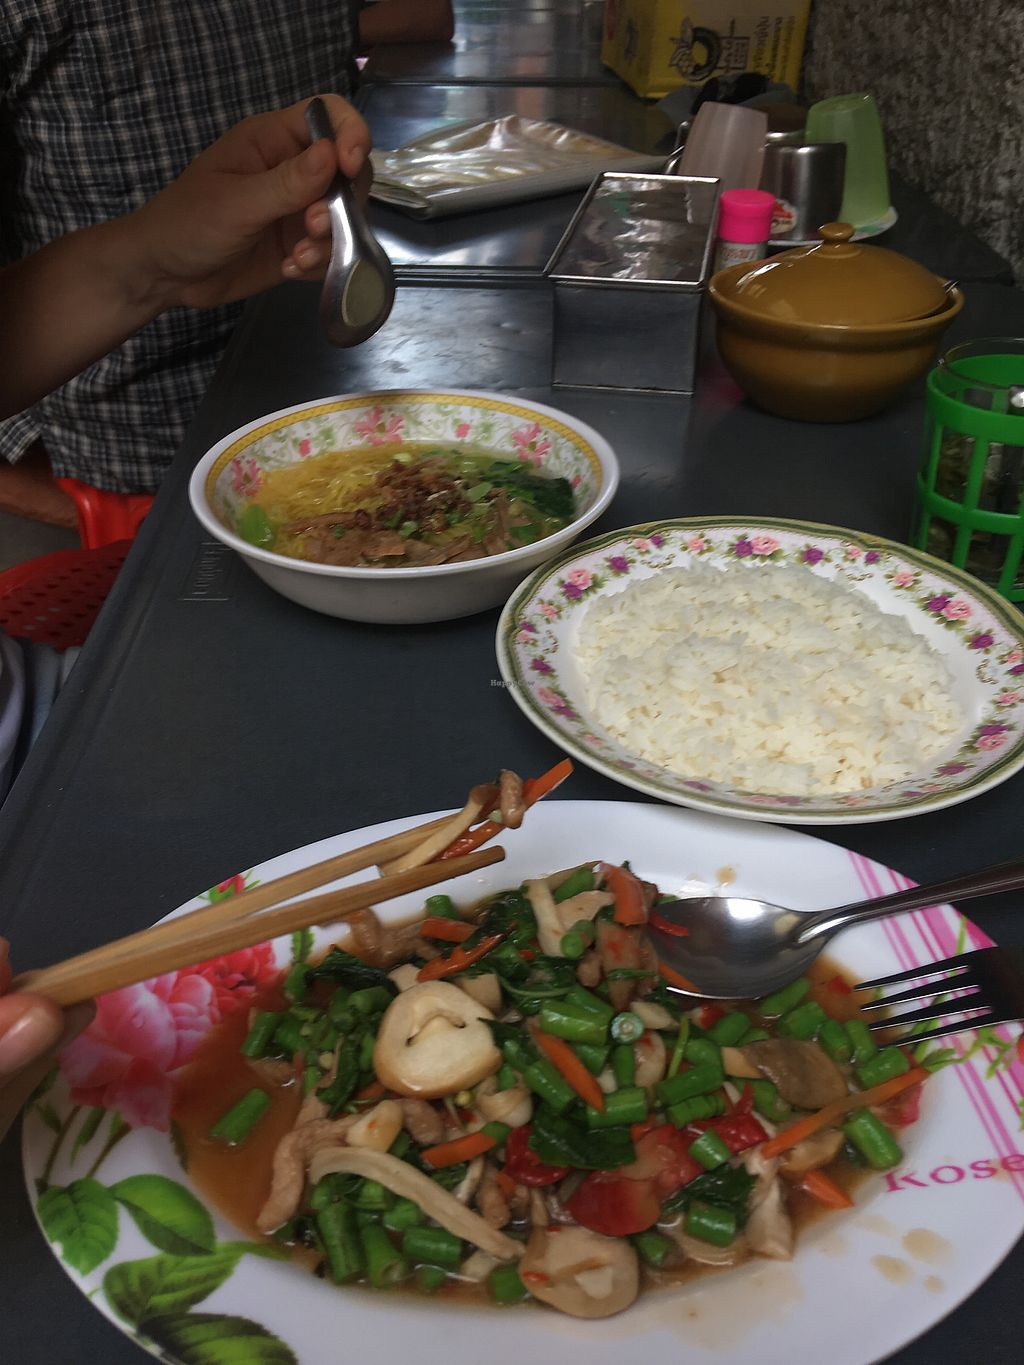 """Photo of Lee Jae Veg  by <a href=""""/members/profile/mbaranya"""">mbaranya</a> <br/>Great Food only 90 baht <br/> December 16, 2017  - <a href='/contact/abuse/image/38192/336167'>Report</a>"""